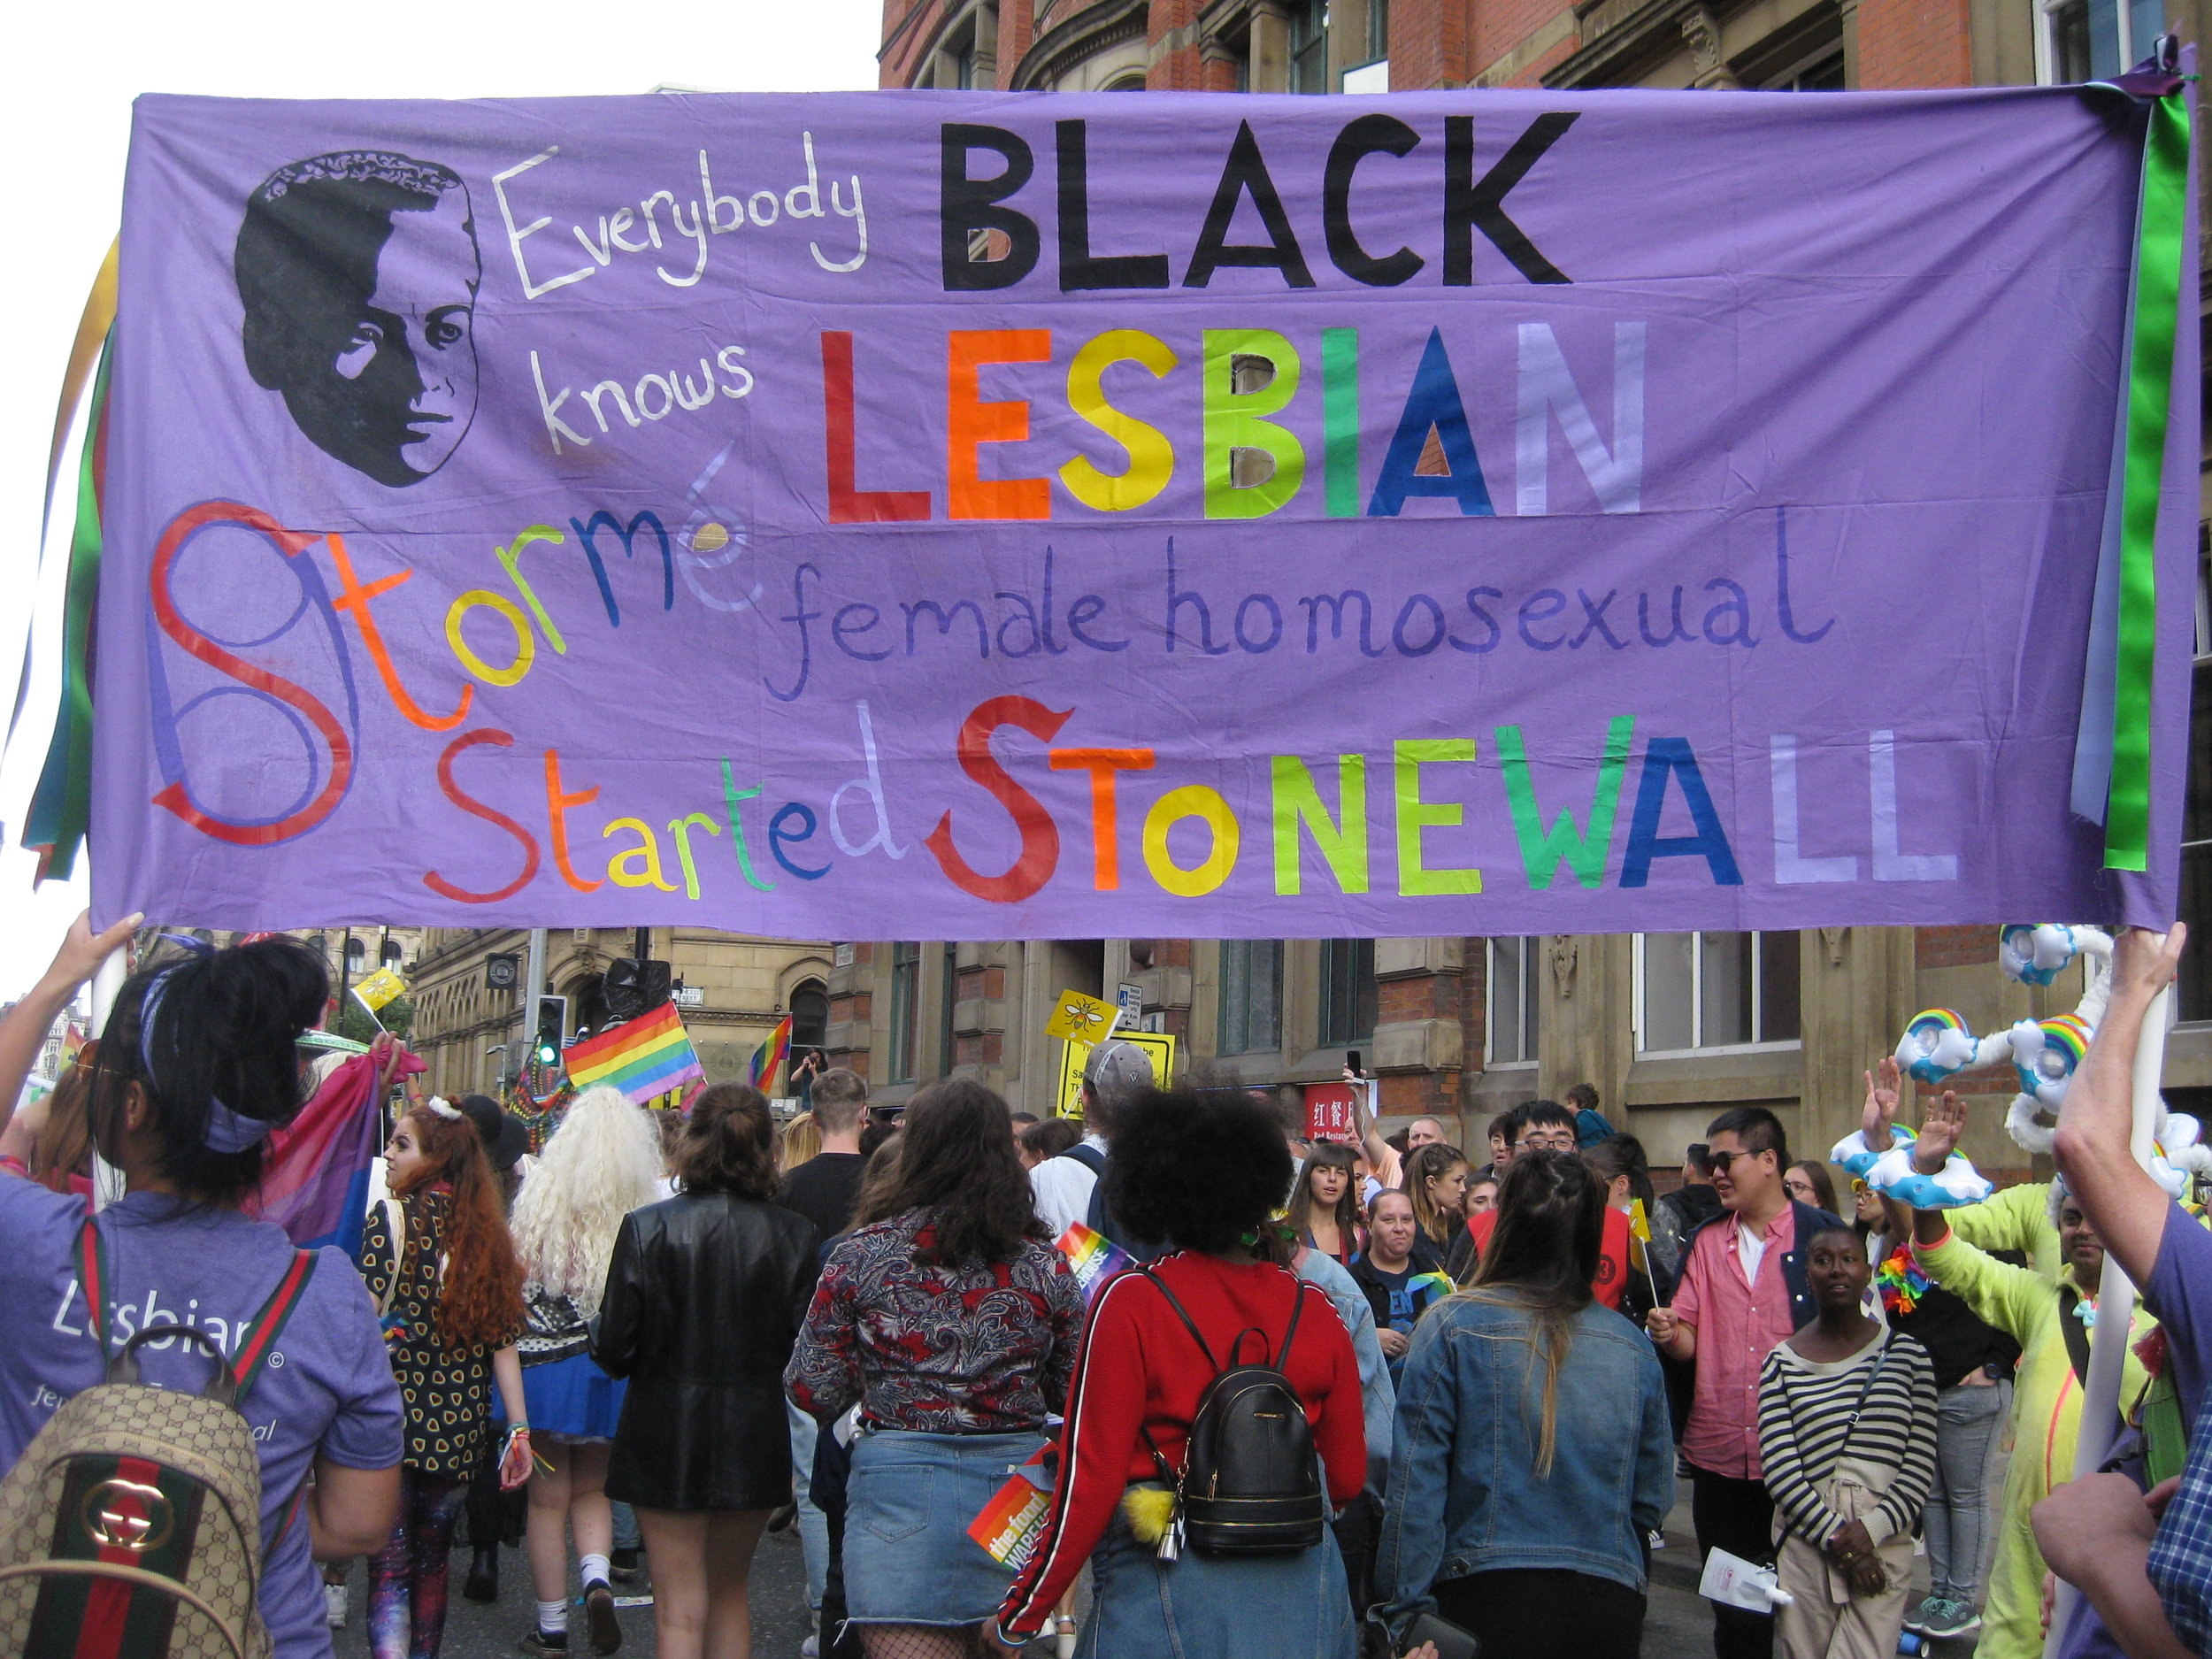 We marched in Manchester Pride parade 2018, carrying this stunning banner paying tribute to Stormé DeLaverie and representing  The Society for the Preservation of Accurate Pride Heritage.